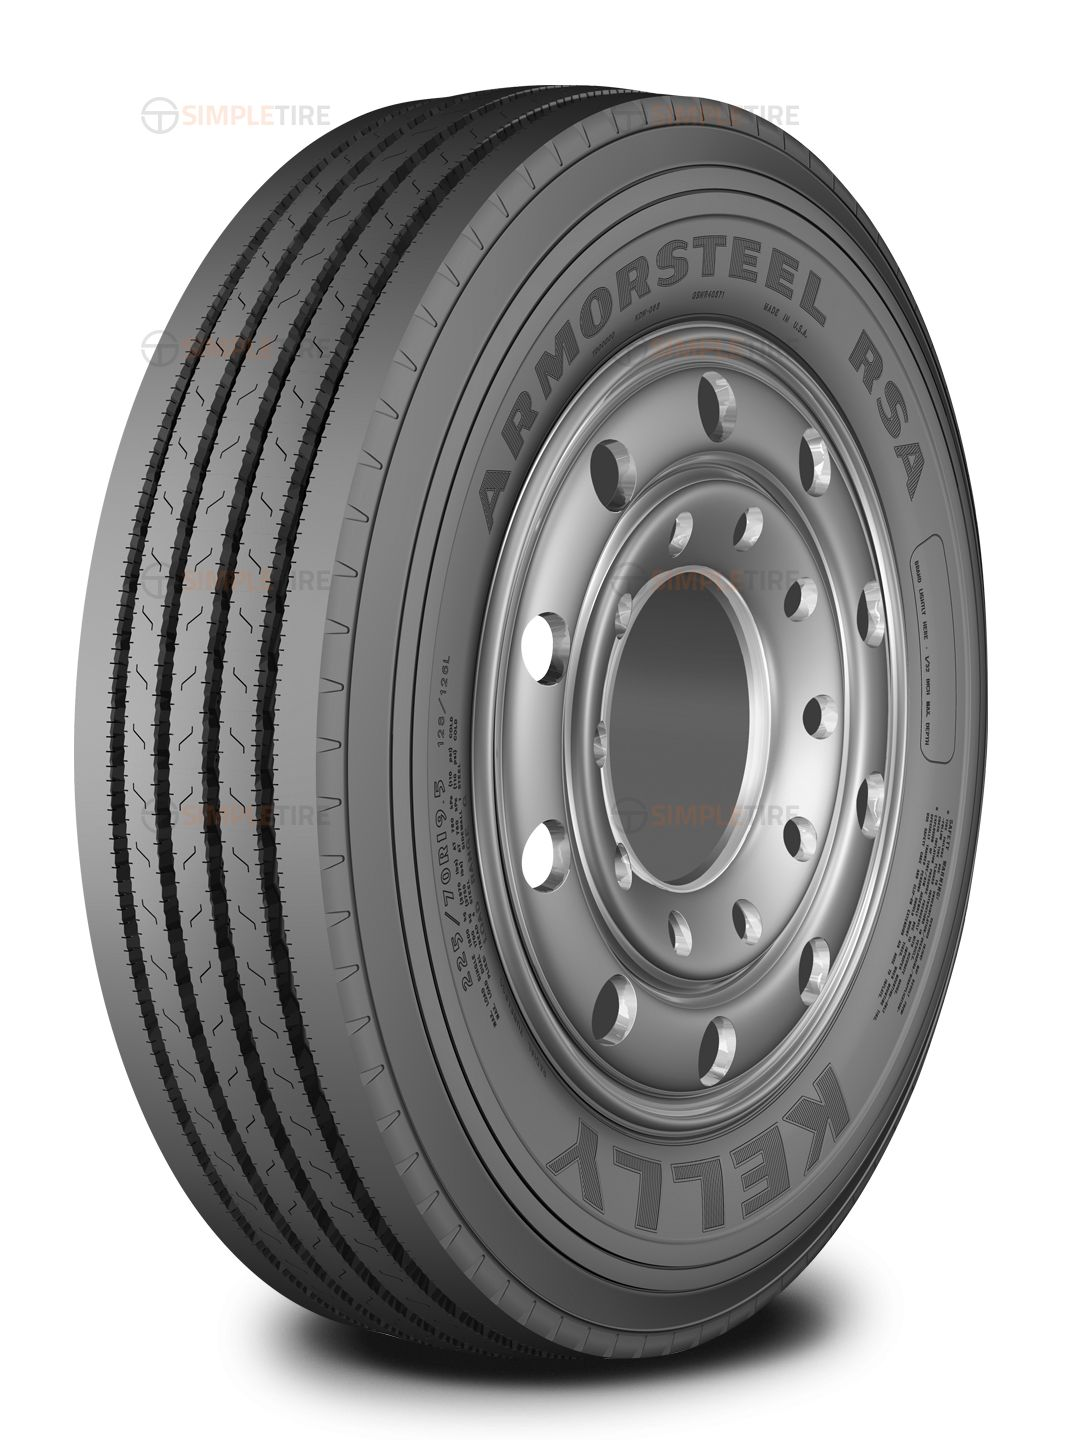 358623003 225/70R19.5 RSA Kelly Tires